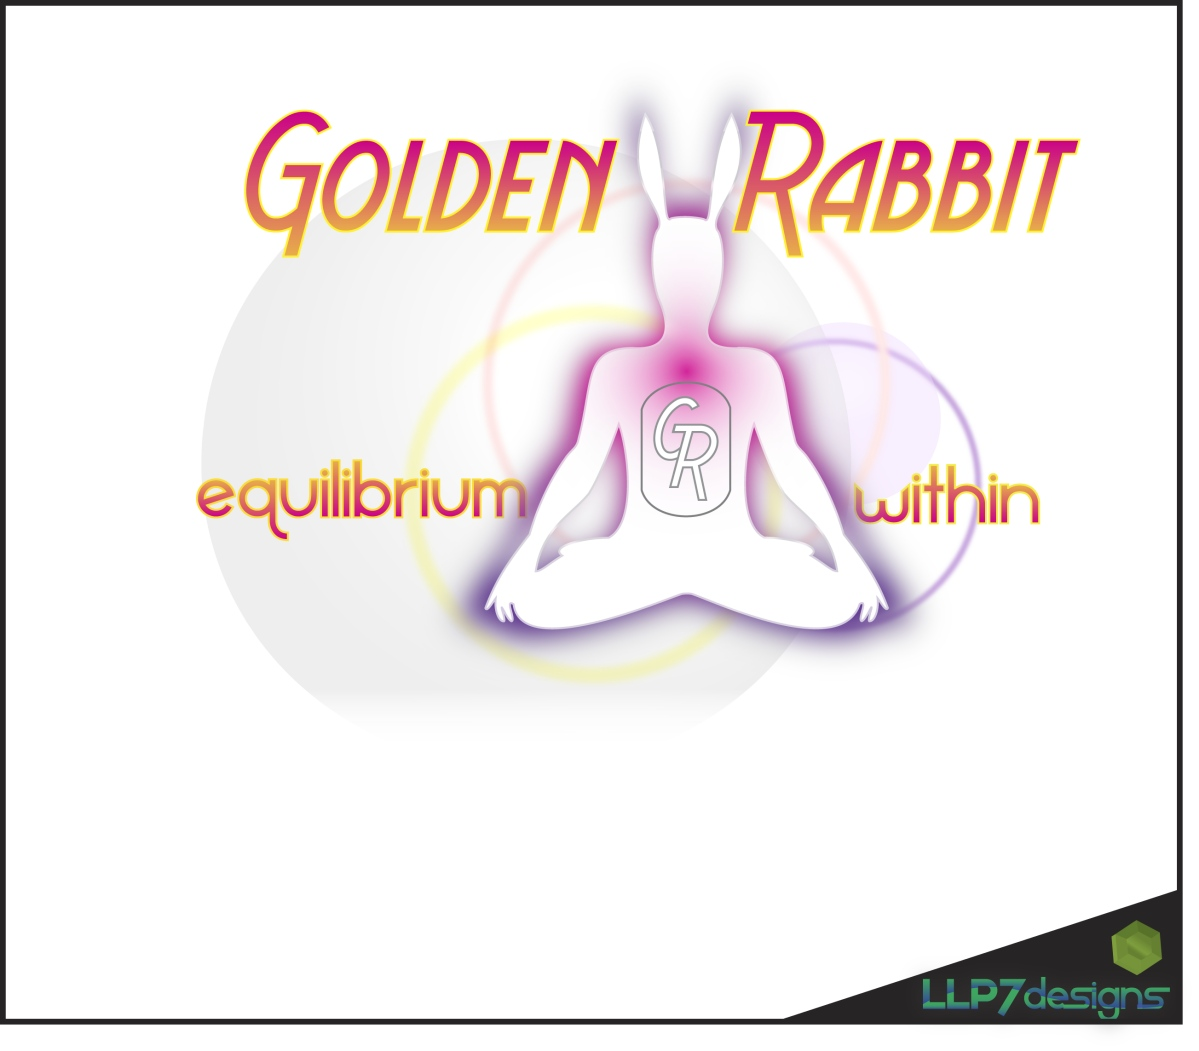 Logo Design by LLP7 - Entry No. 14 in the Logo Design Contest Equilibrium Within - Living Jewelry.